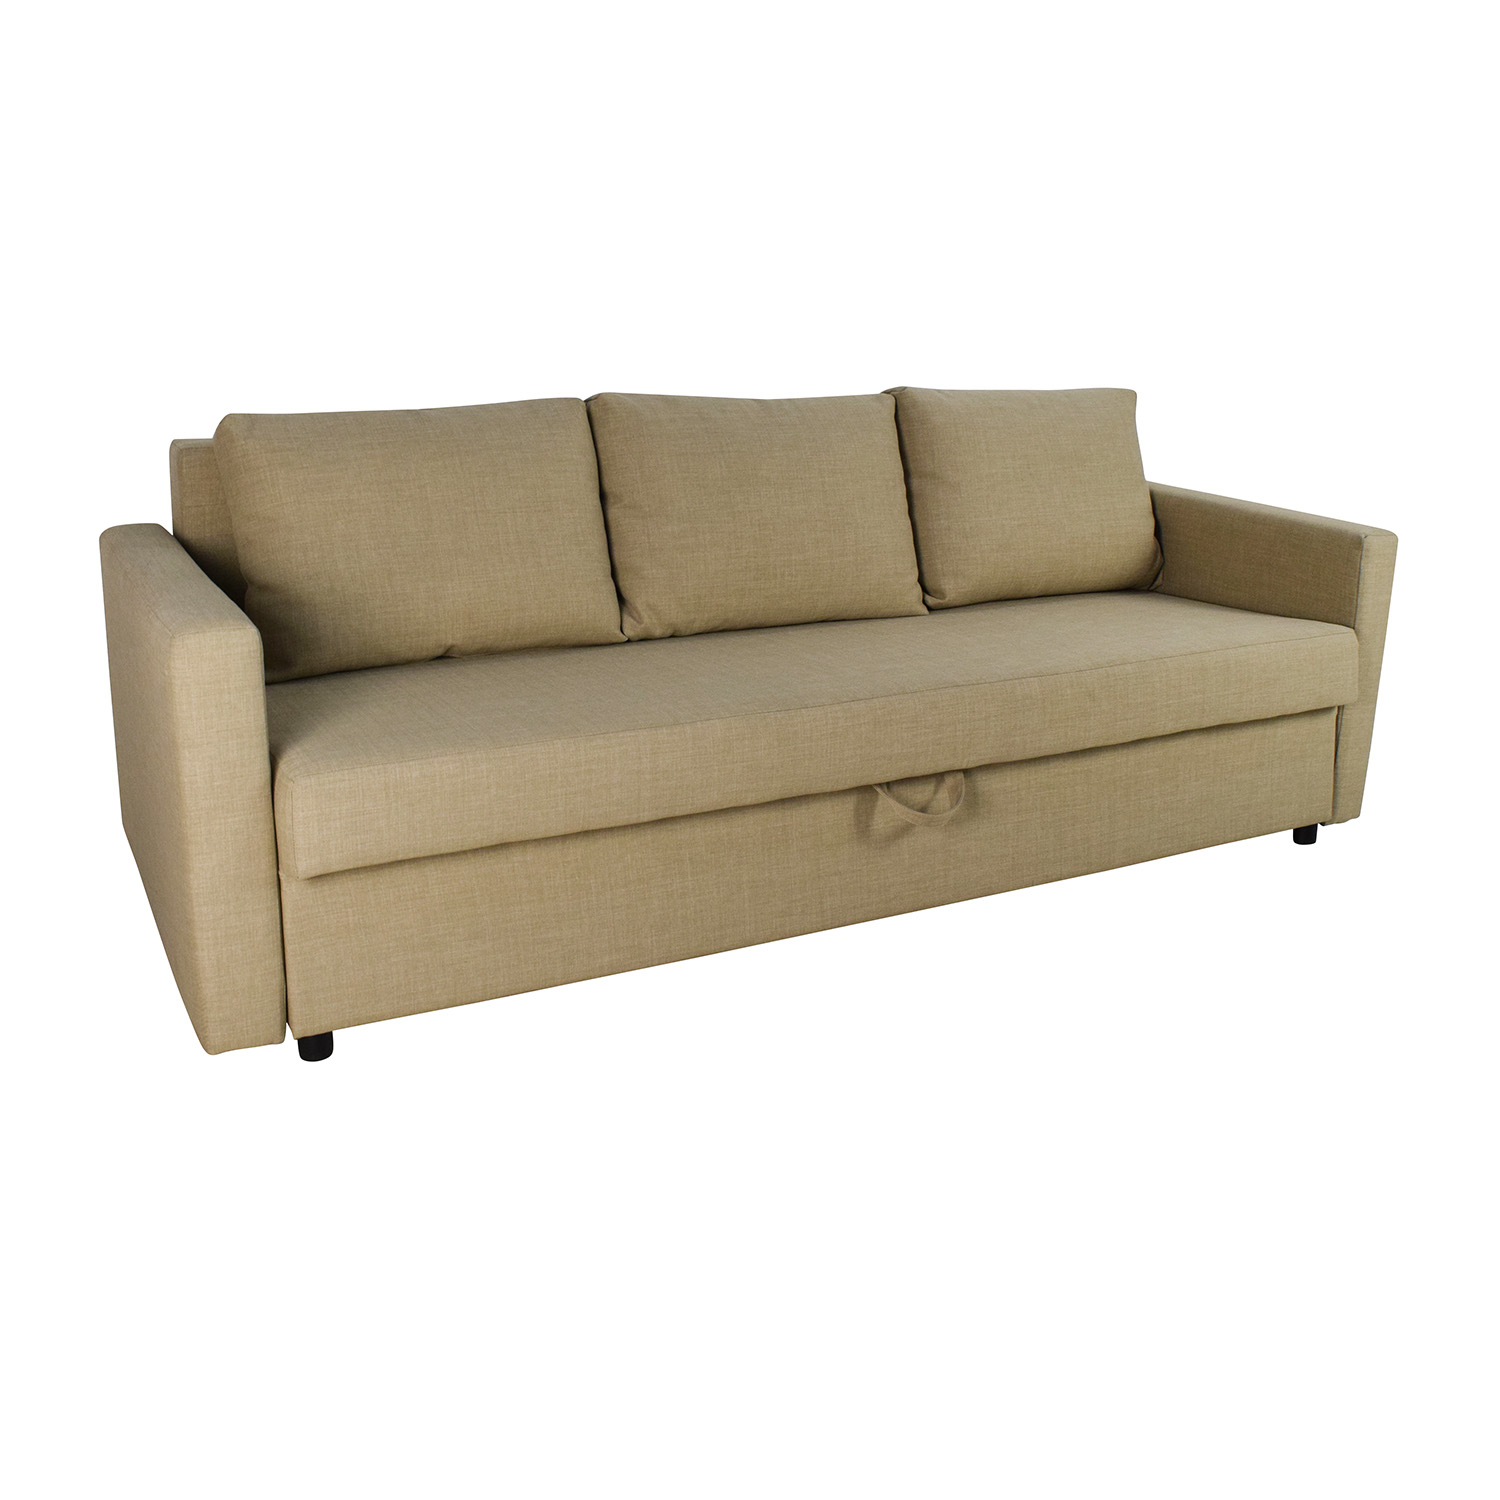 Ikea Sleeper Sofa: IKEA FRIHETEN Sleeper Sofa With Storage / Sofas